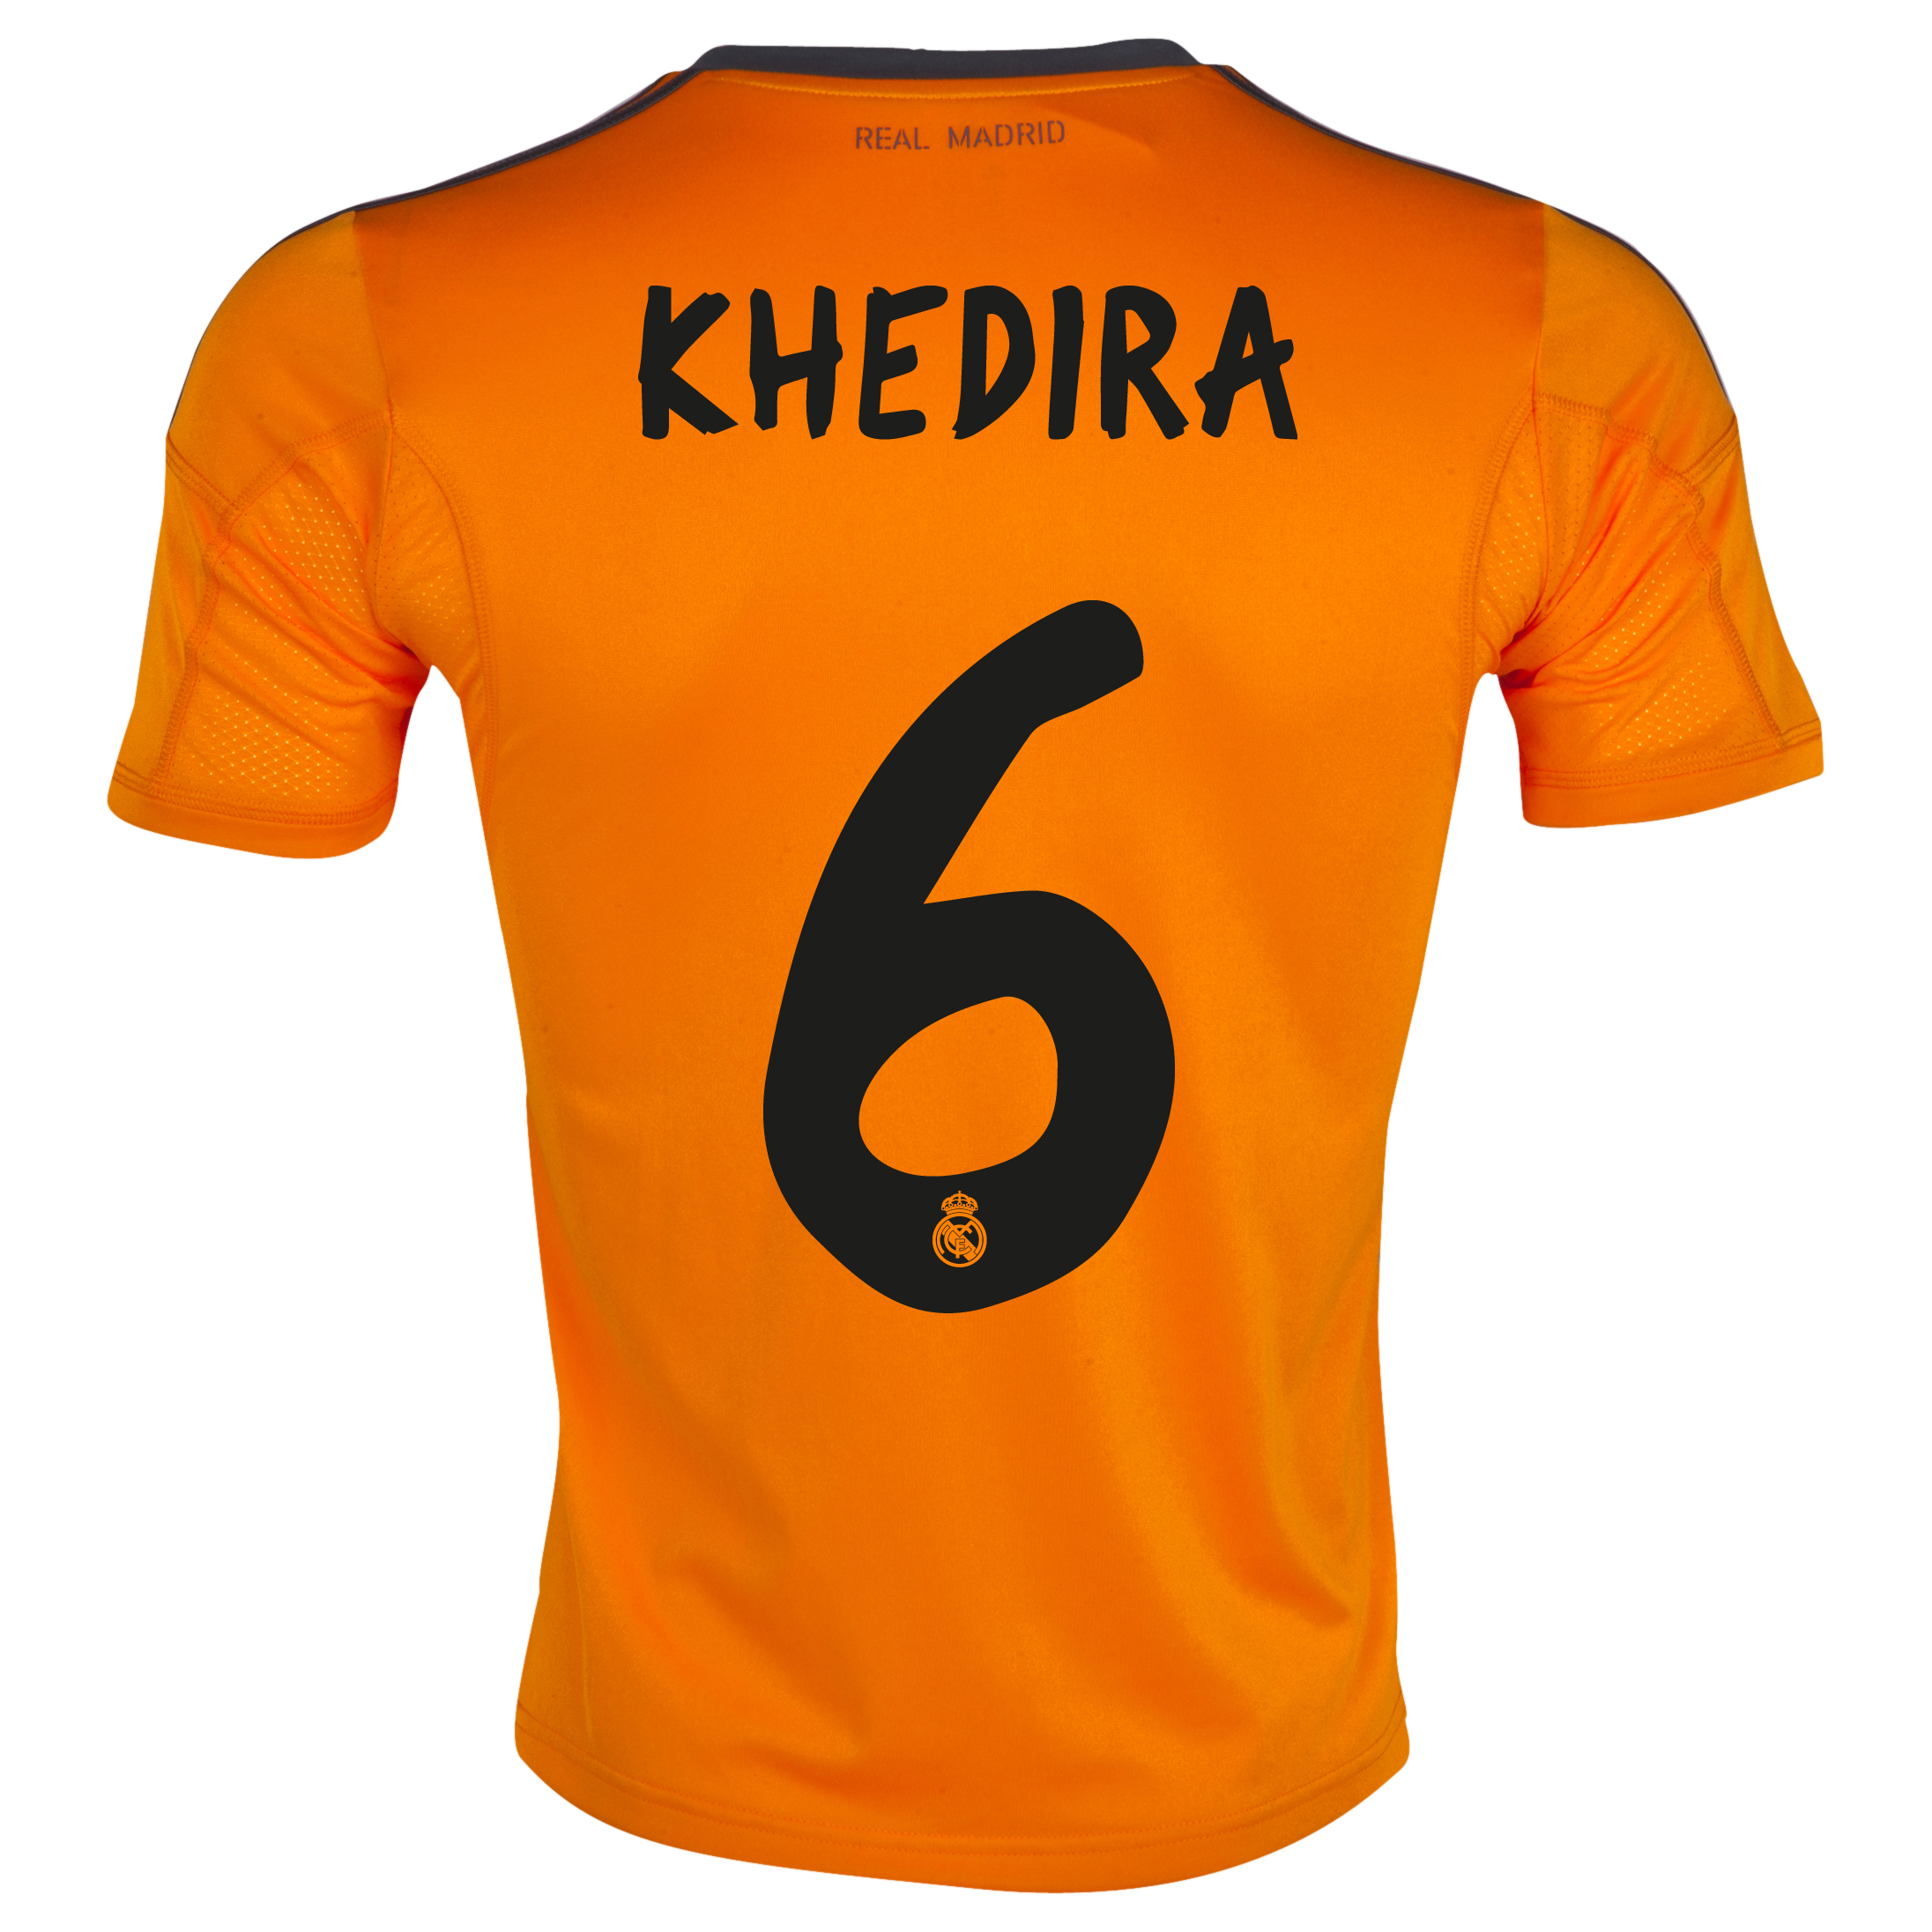 Real Madrid Third Shirt 2013/14 - Kids with Khedira 6 printing